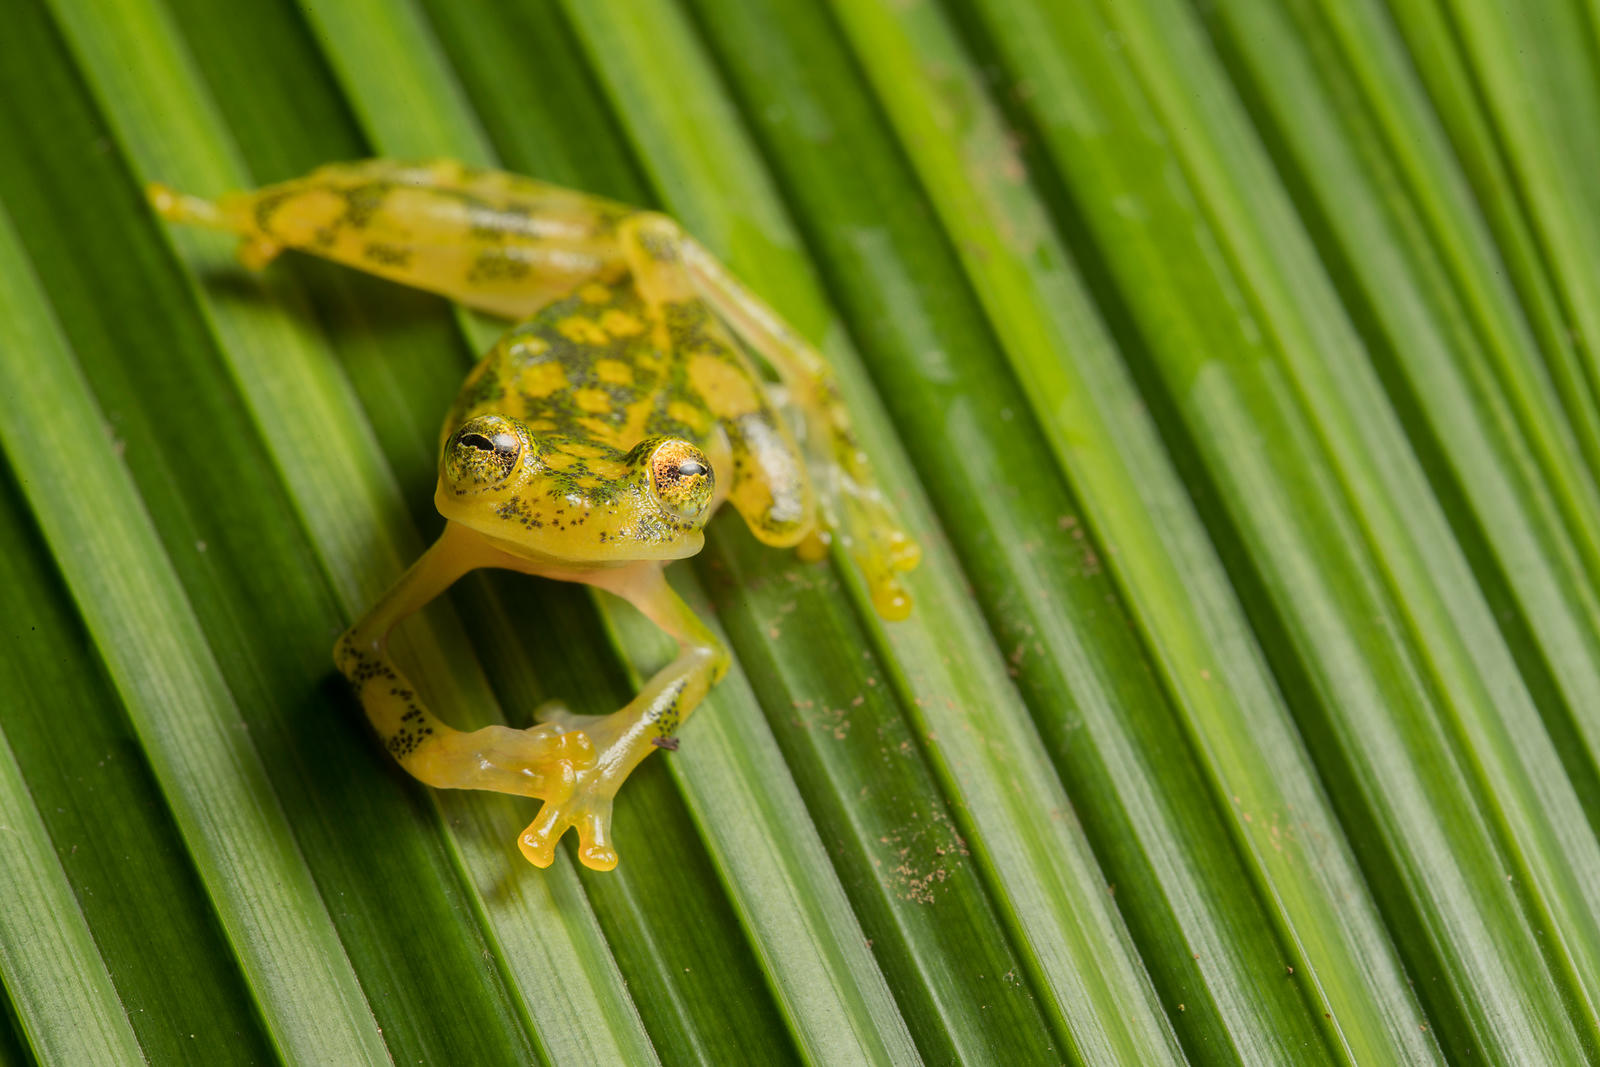 Reticulated Glass Frog, Costa Rica